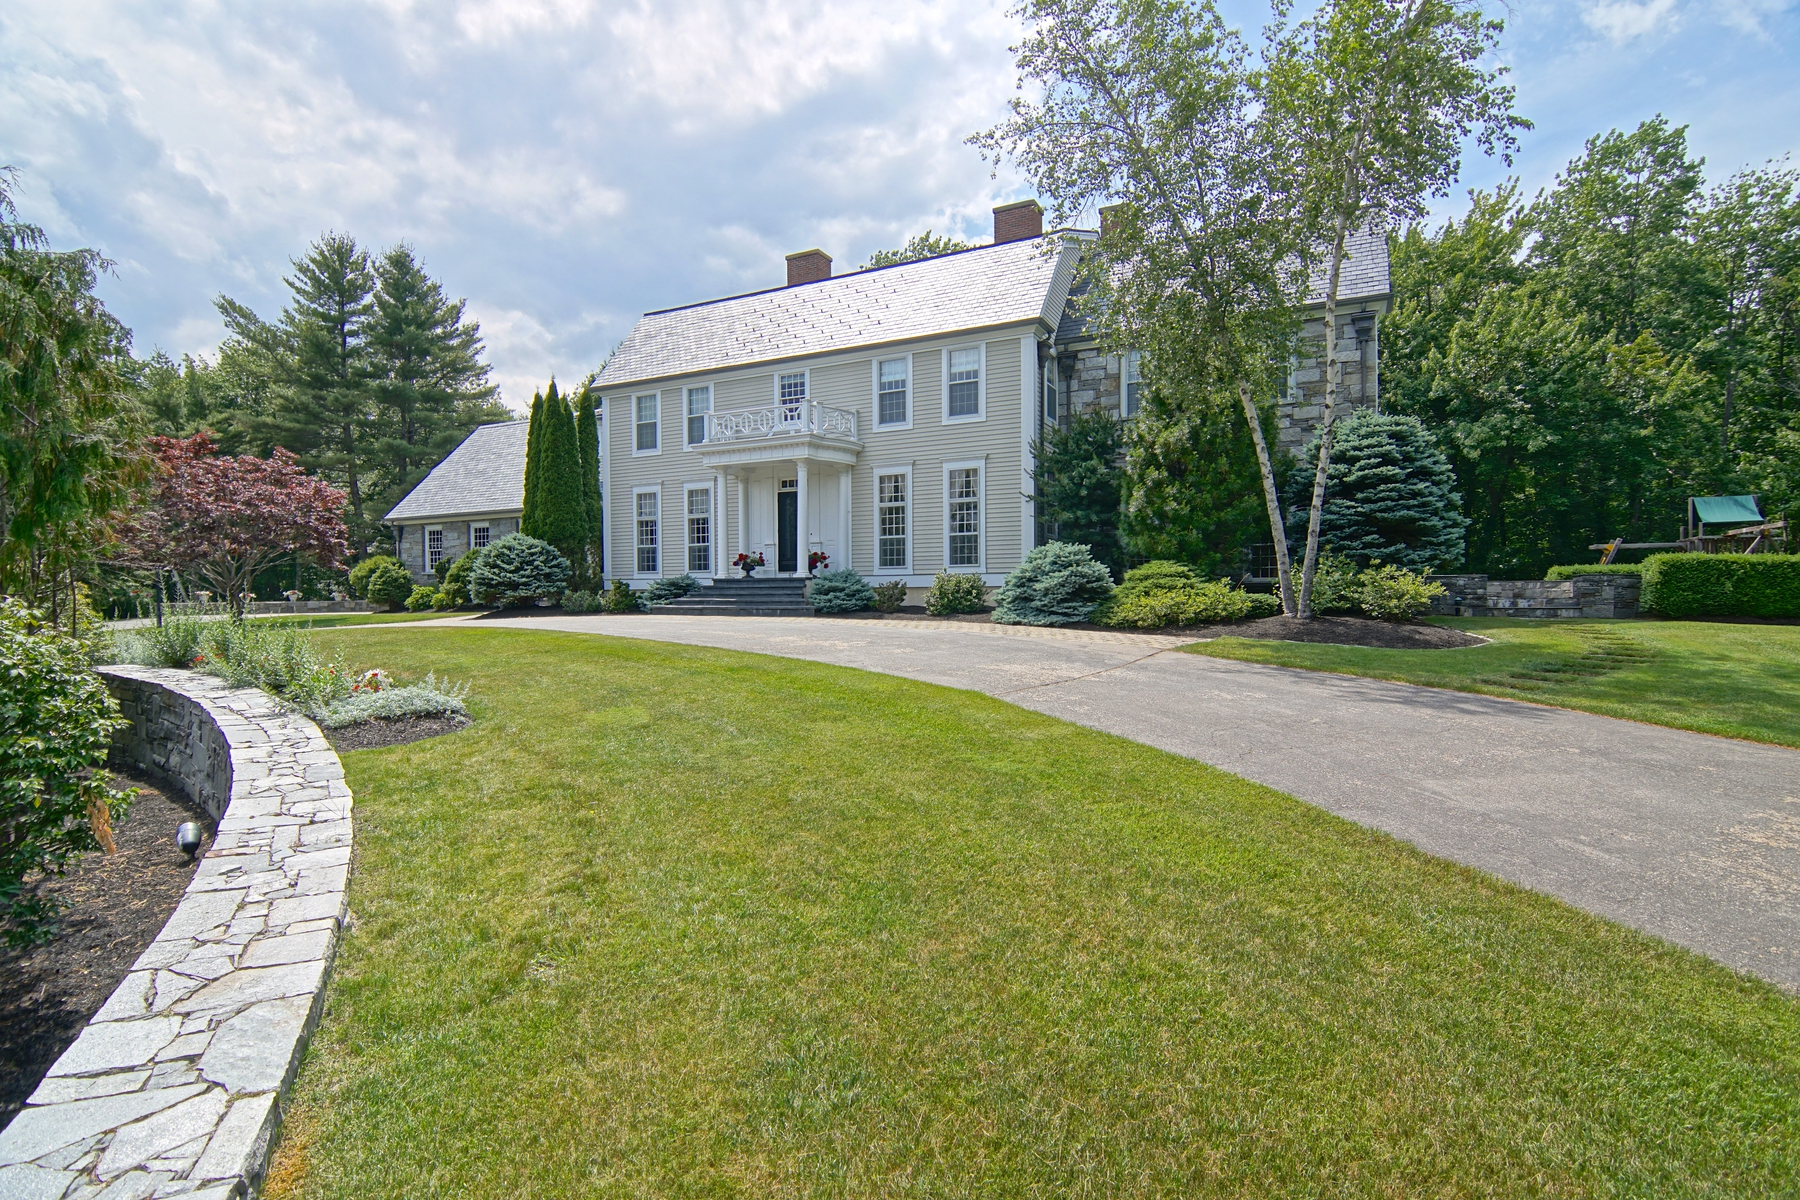 Single Family Home for Sale at Overlooking the 12th Green 45 Fairway Drive Rye, New Hampshire, 03870 United States